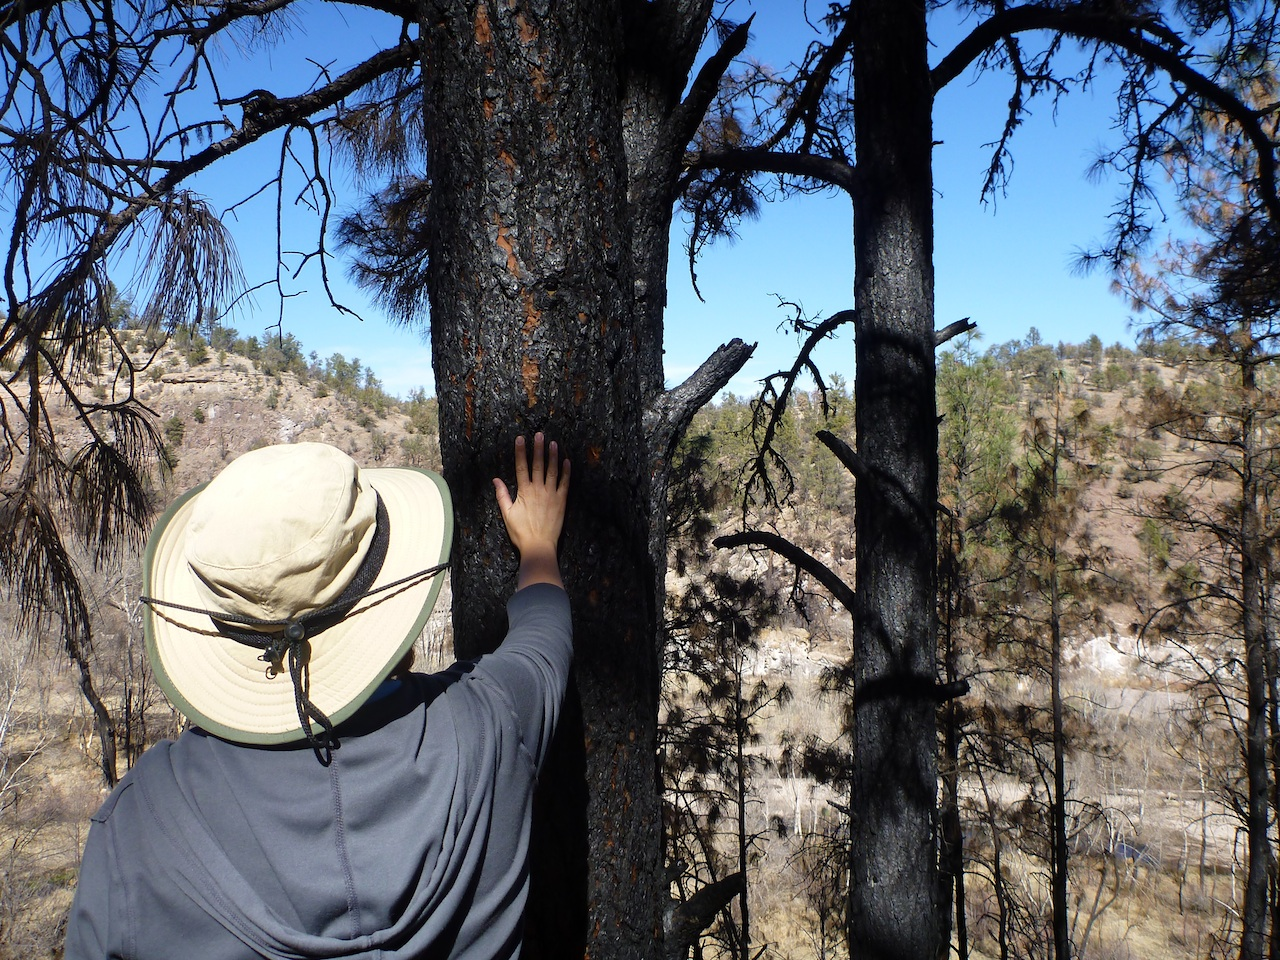 Brenda Touching A Tree That Had Burned In The 2011 Fires That Swept Through The Forest.